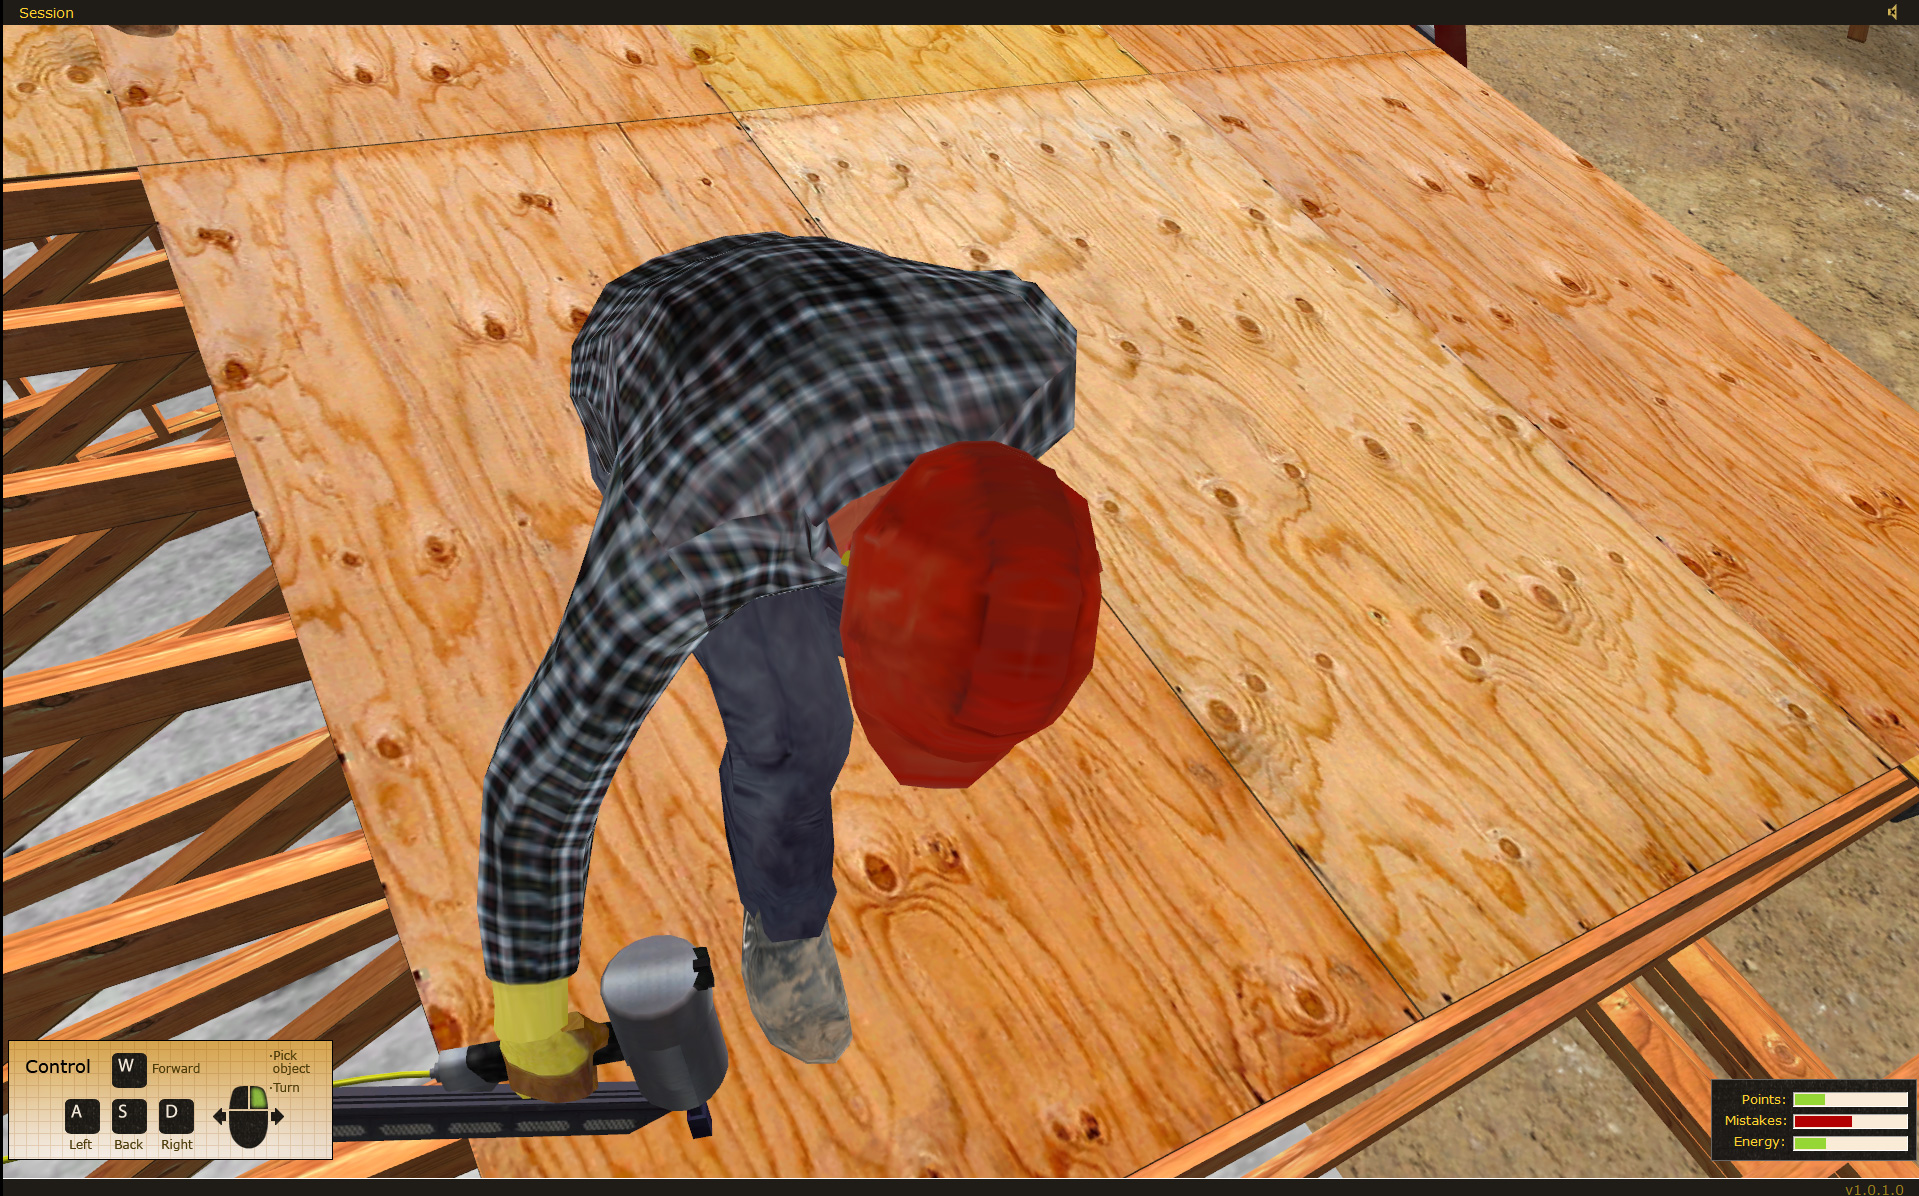 State Compensation Insurance Fund Safety Construction Material Handling Safety Training Simulator